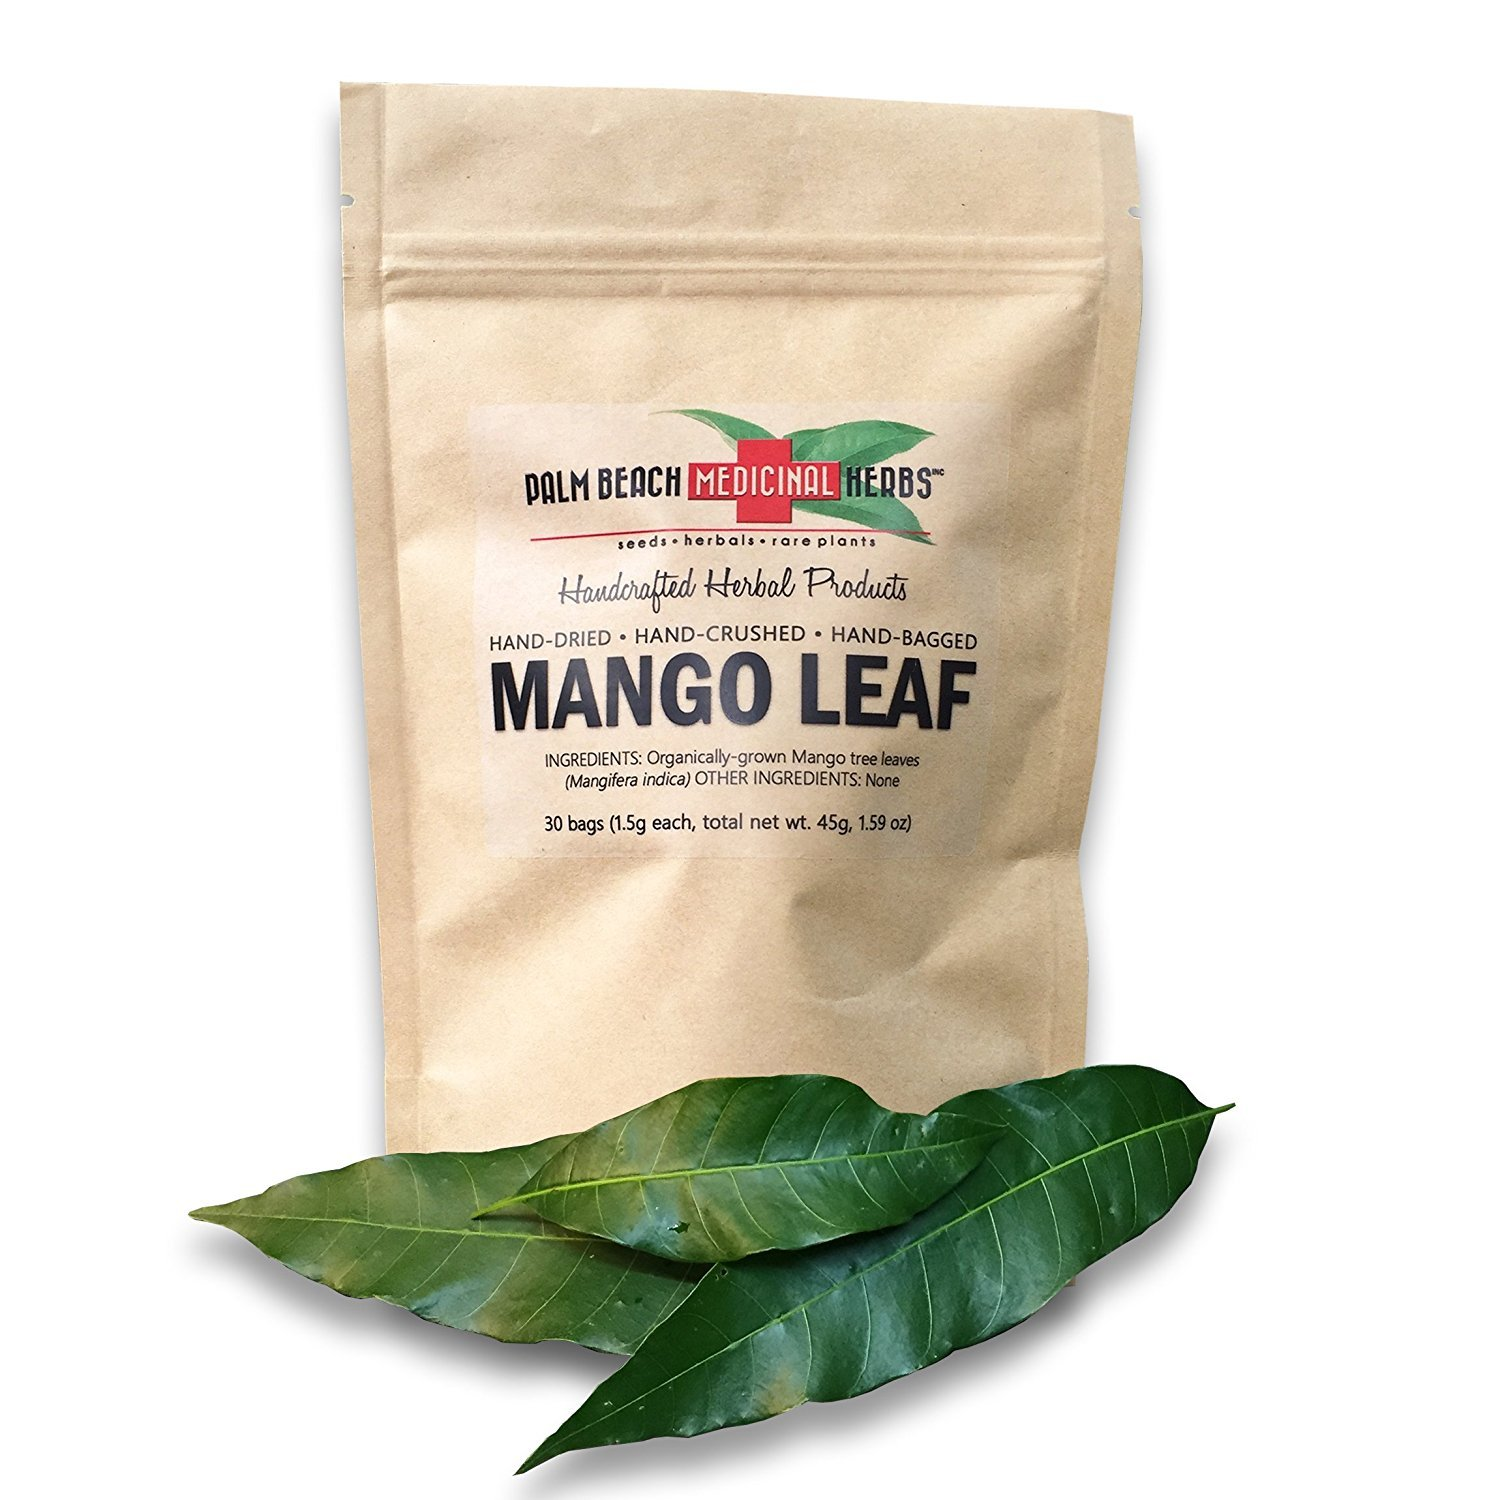 Dried Mango Leaf - 30 Individual Bags of Fresh Dried Hand-Crushed Tropical Mango Tree Leaves - Pure, No Fillers, All-Natural, Non-GMO (1.5g each bag, 45g total)